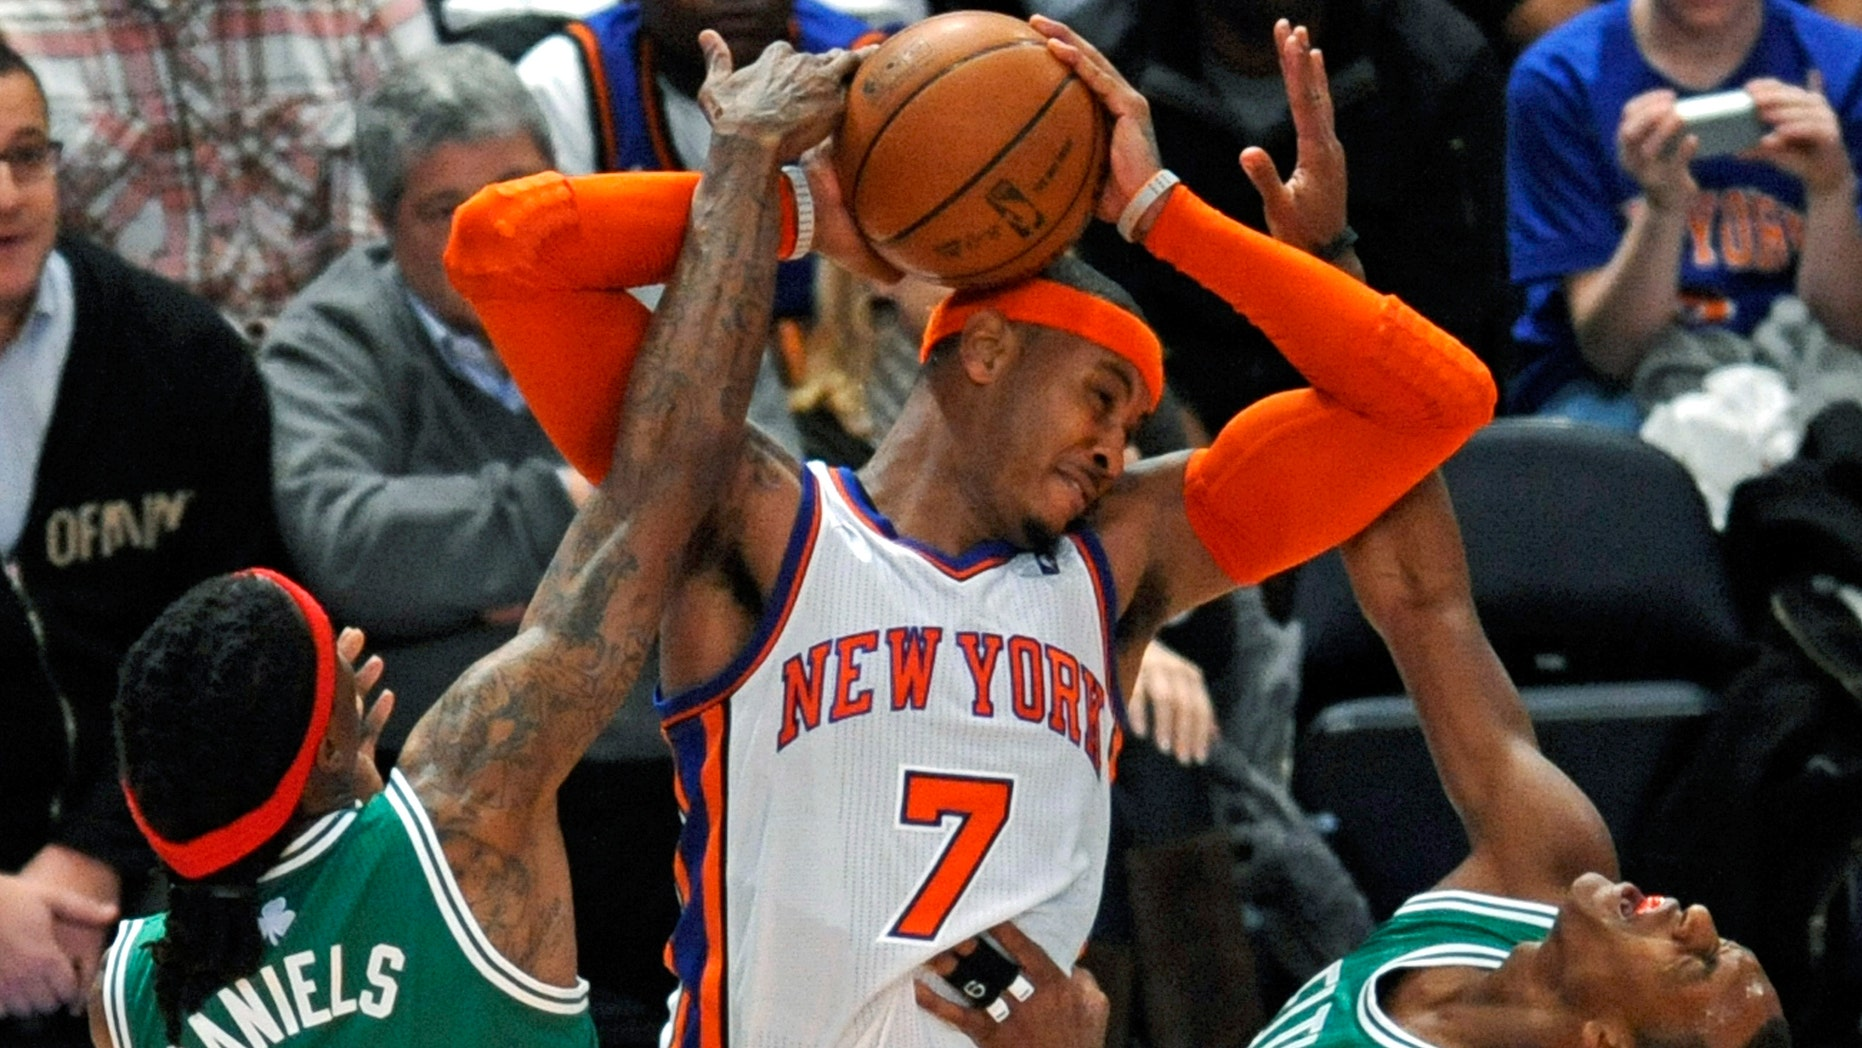 New York Knicks' Carmelo Anthony (7) fouls Boston Celtics' Rajon Rondo, right, with his elbow as he is pressured by Celtics' Marquis Daniels (4) during the third quarter of an NBA basketball game Sunday, Dec. 25, 2011 at Madison Square Garden in New York. Knicks won 106-104. (AP Photo/Bill Kostroun)